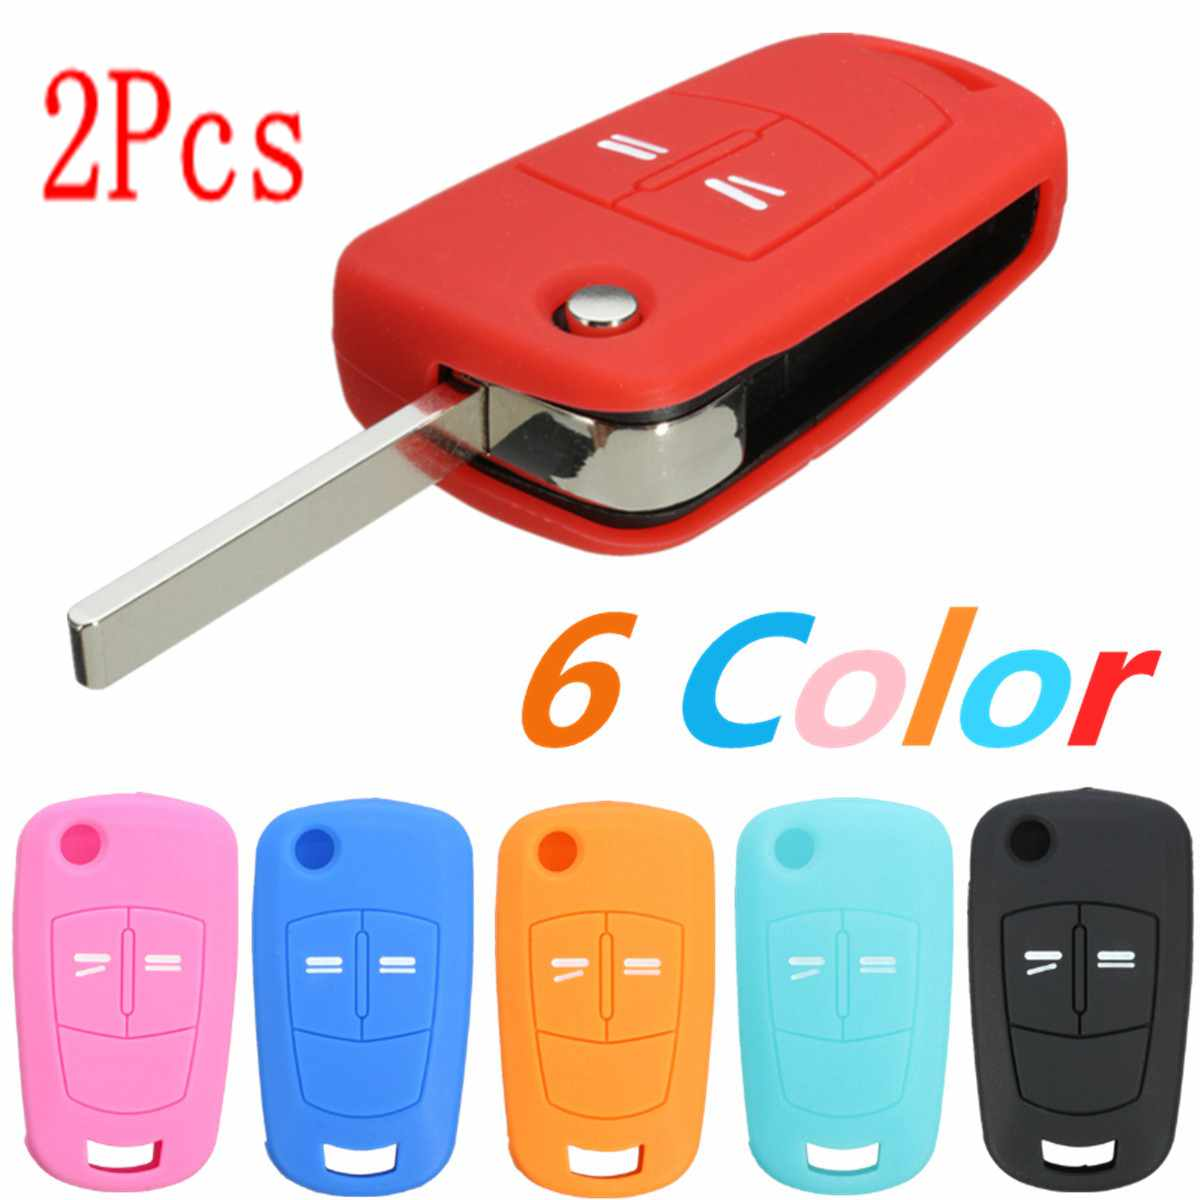 2Pcs Silicone 2 Button Flip Remote Key Case Fob Cover For Vauxhall Opel